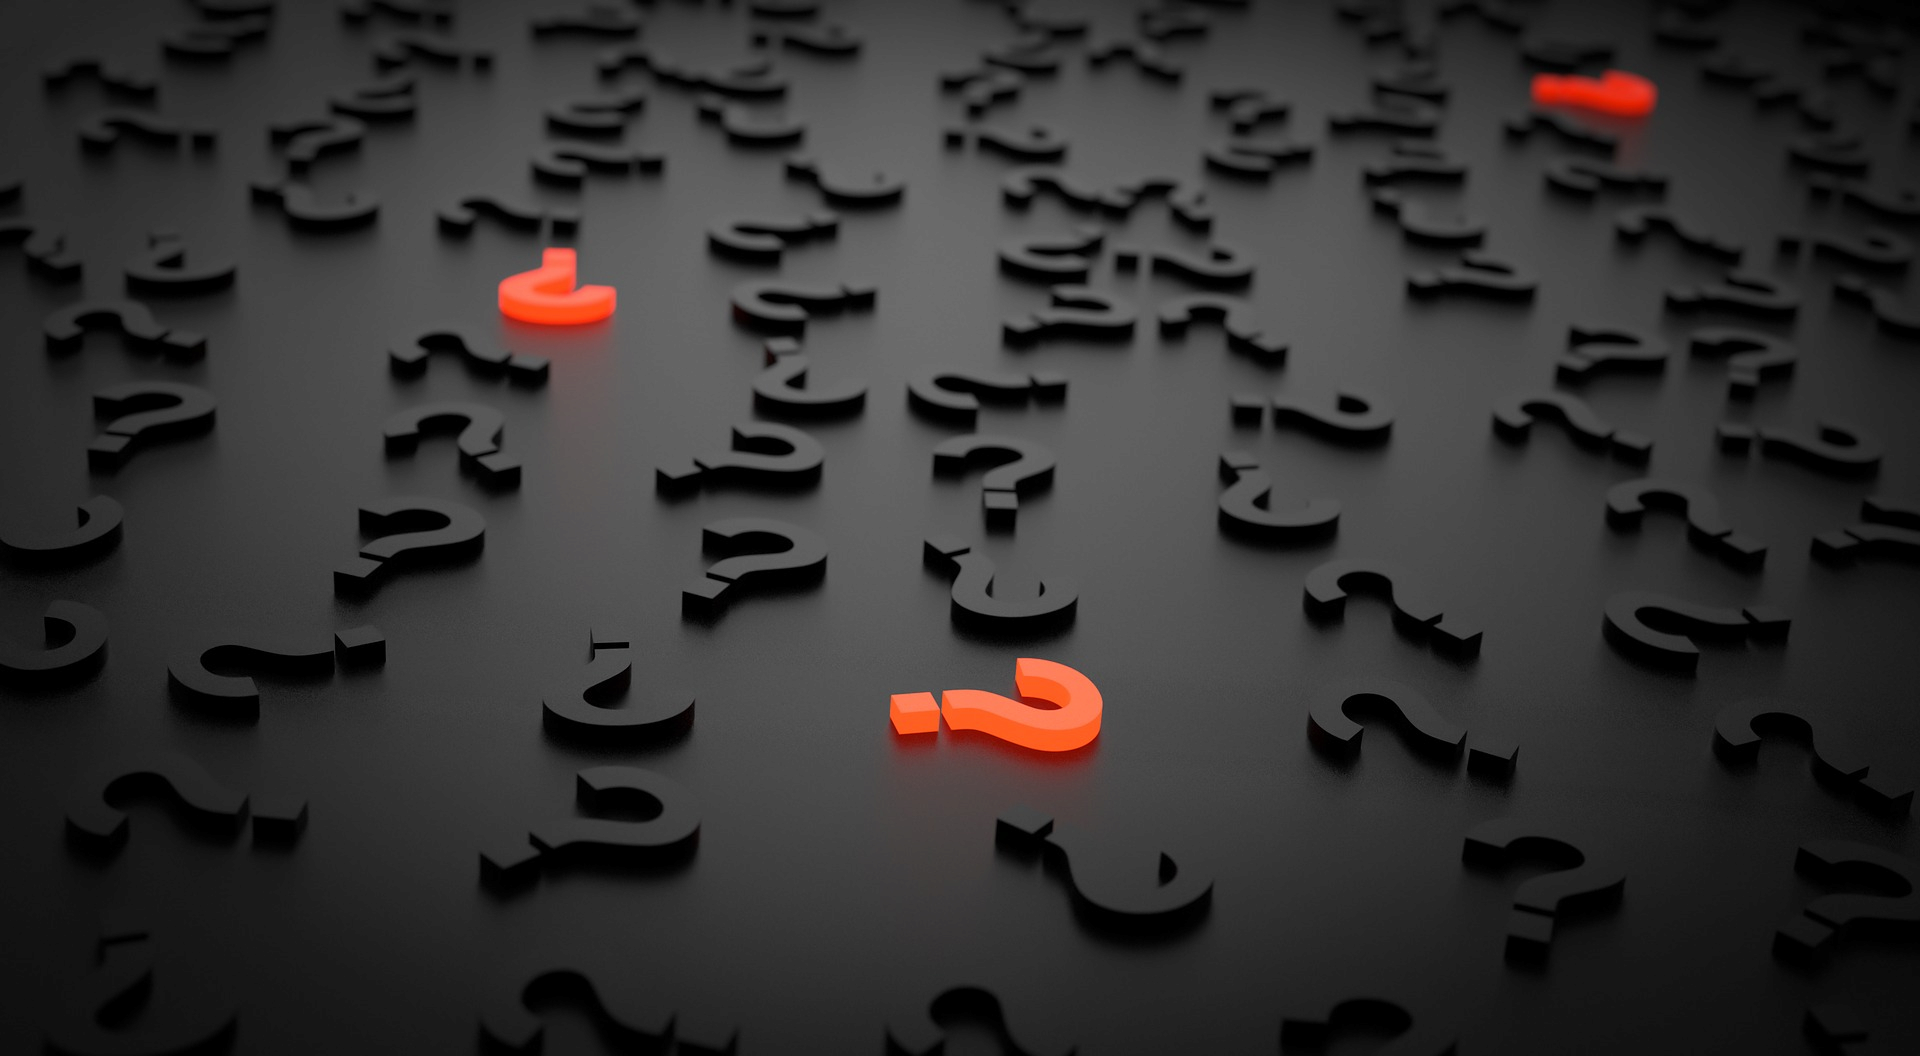 Riddles in the dark, dear searcher? What patent searcher  doesn't  like the challenge of a good conundrum?  Original version of image by  Arek Socha  from  Pixabay .